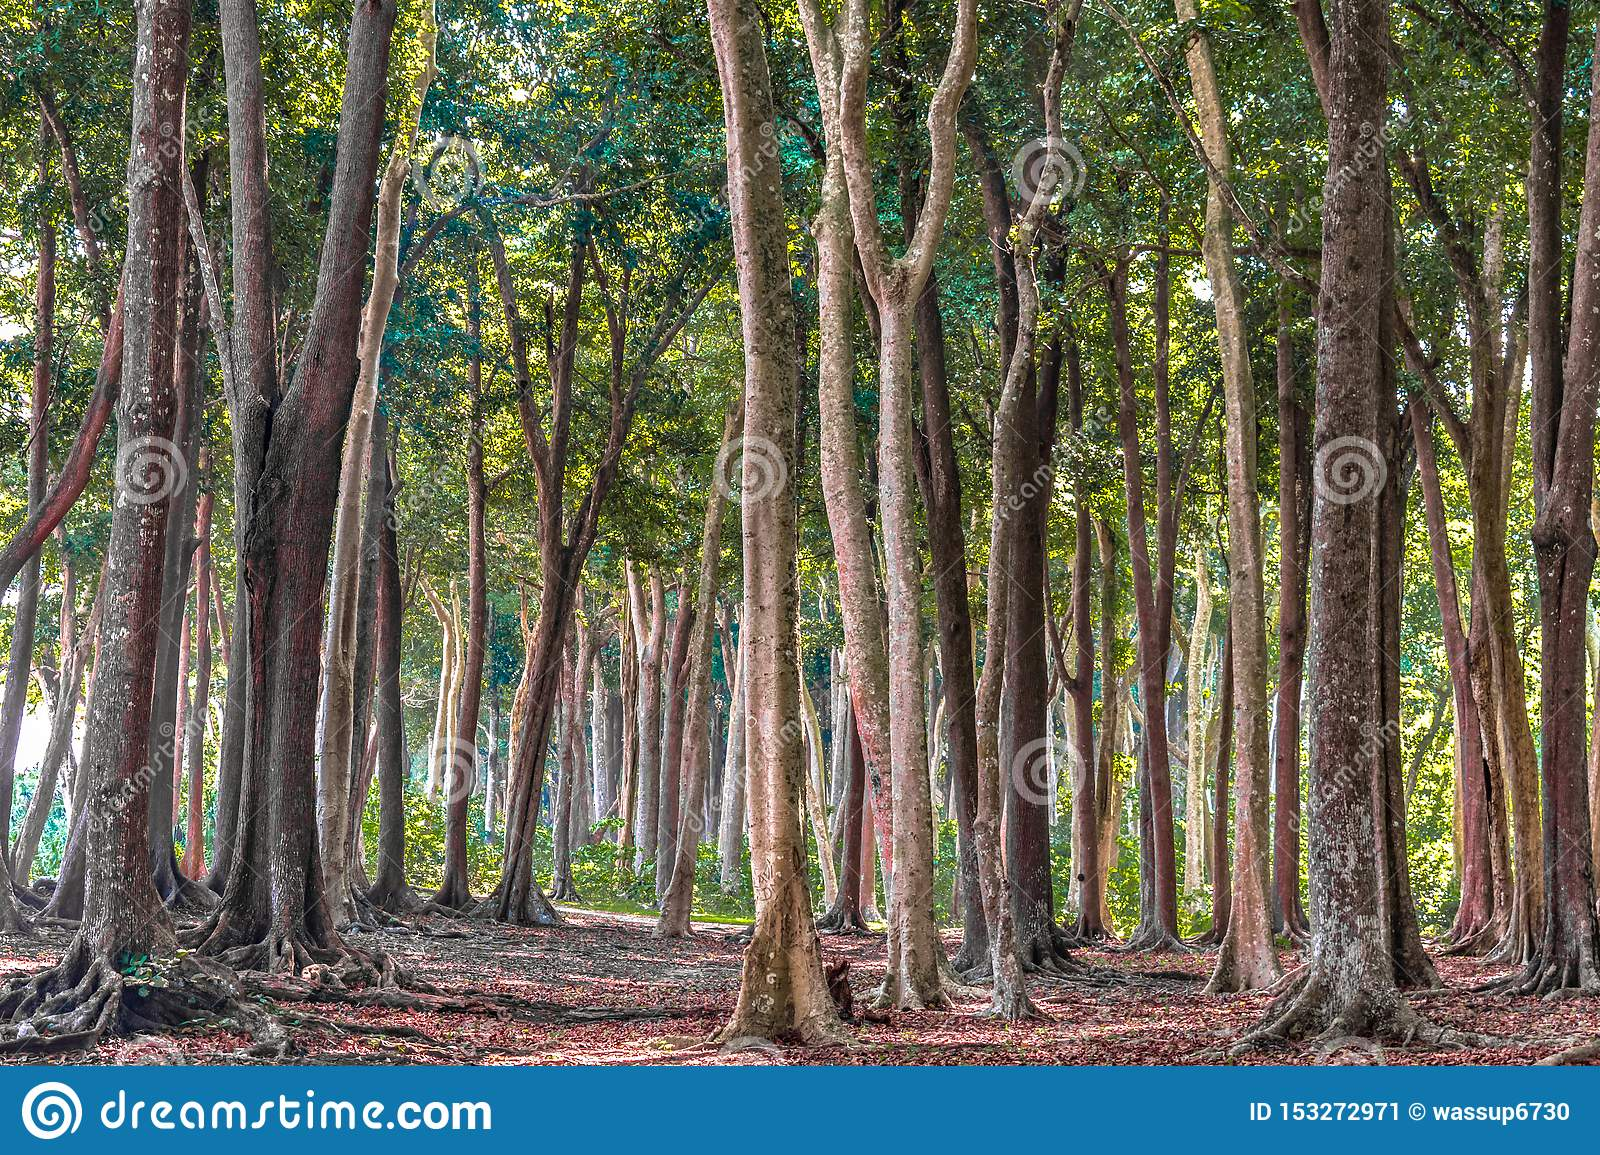 Tropical Evergreen Forest with tall trees, on sunny day of Autumn Season. Fallen leaves are decomposing, has covered all ground.